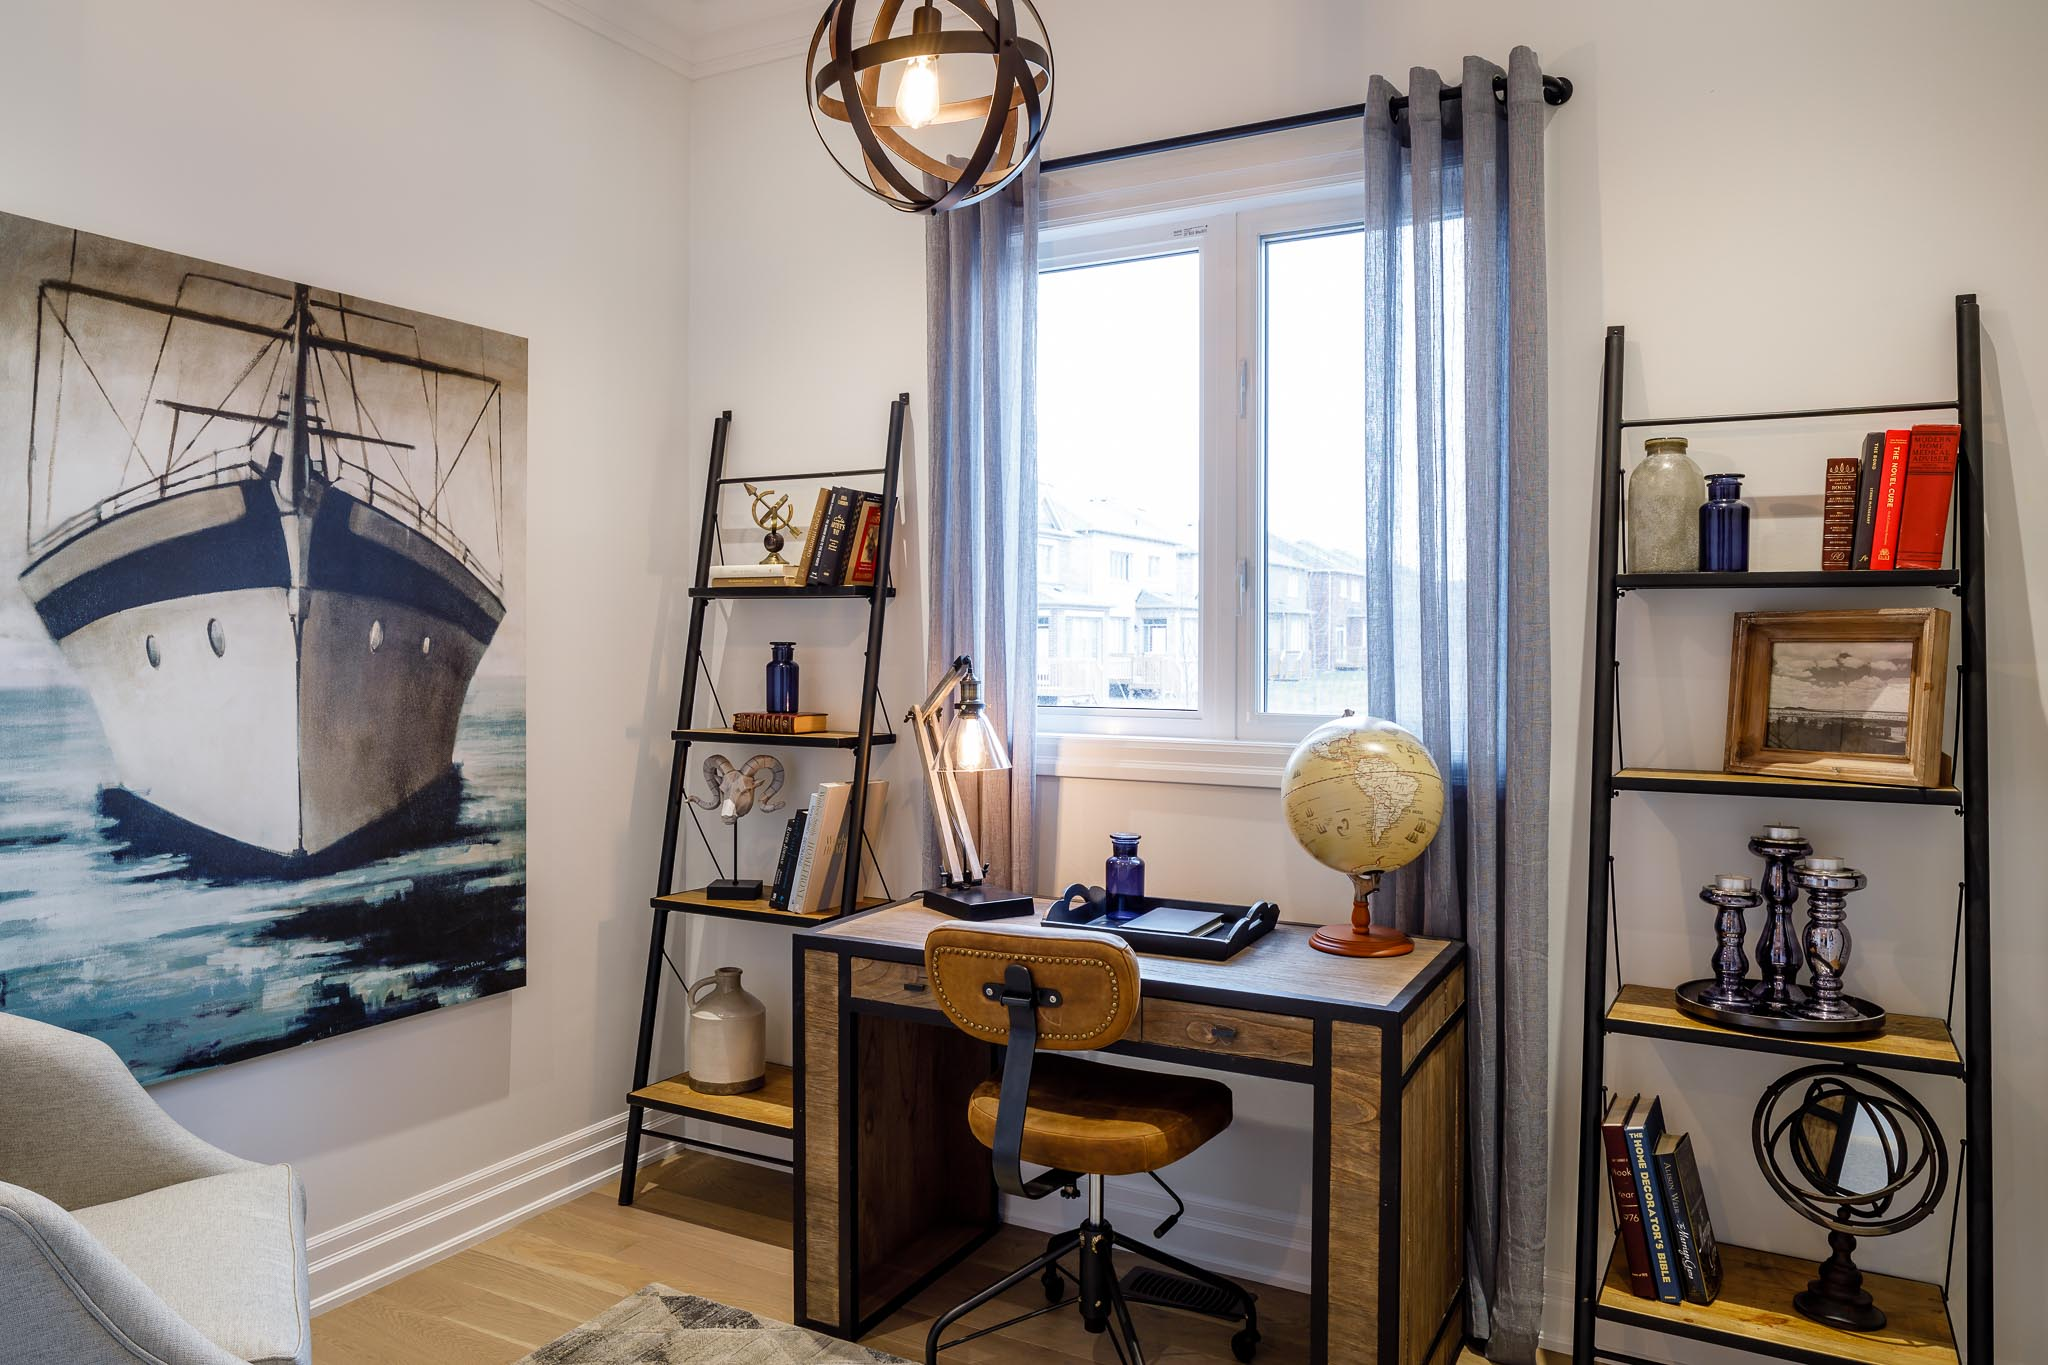 Great Gulf Westfield bedroom with wood desk against window, ladder shelving, and artwork with boat